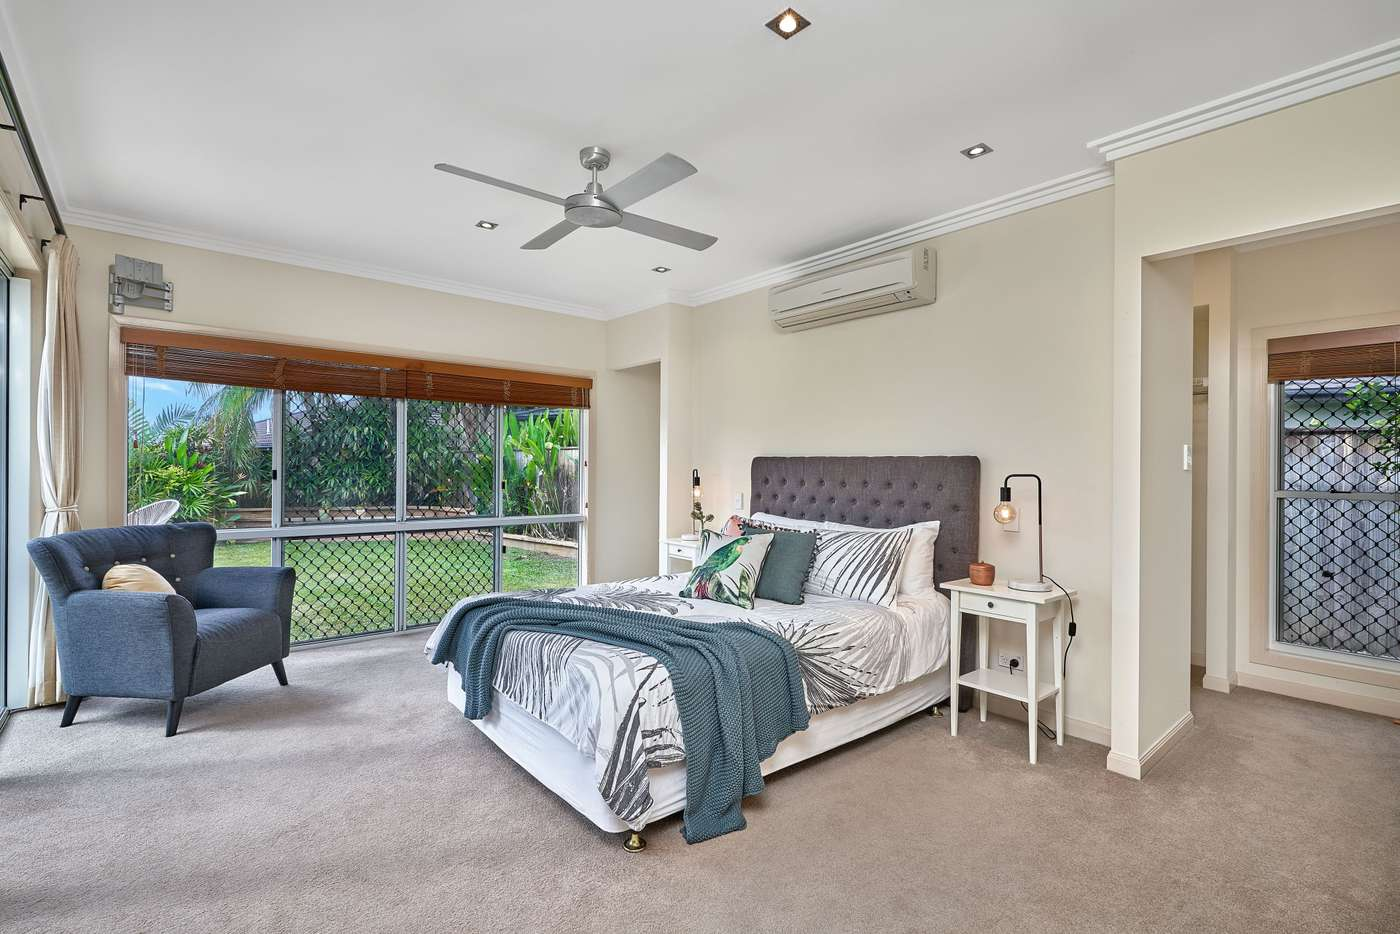 Seventh view of Homely house listing, 9 Ashwood Circuit, Smithfield QLD 4878